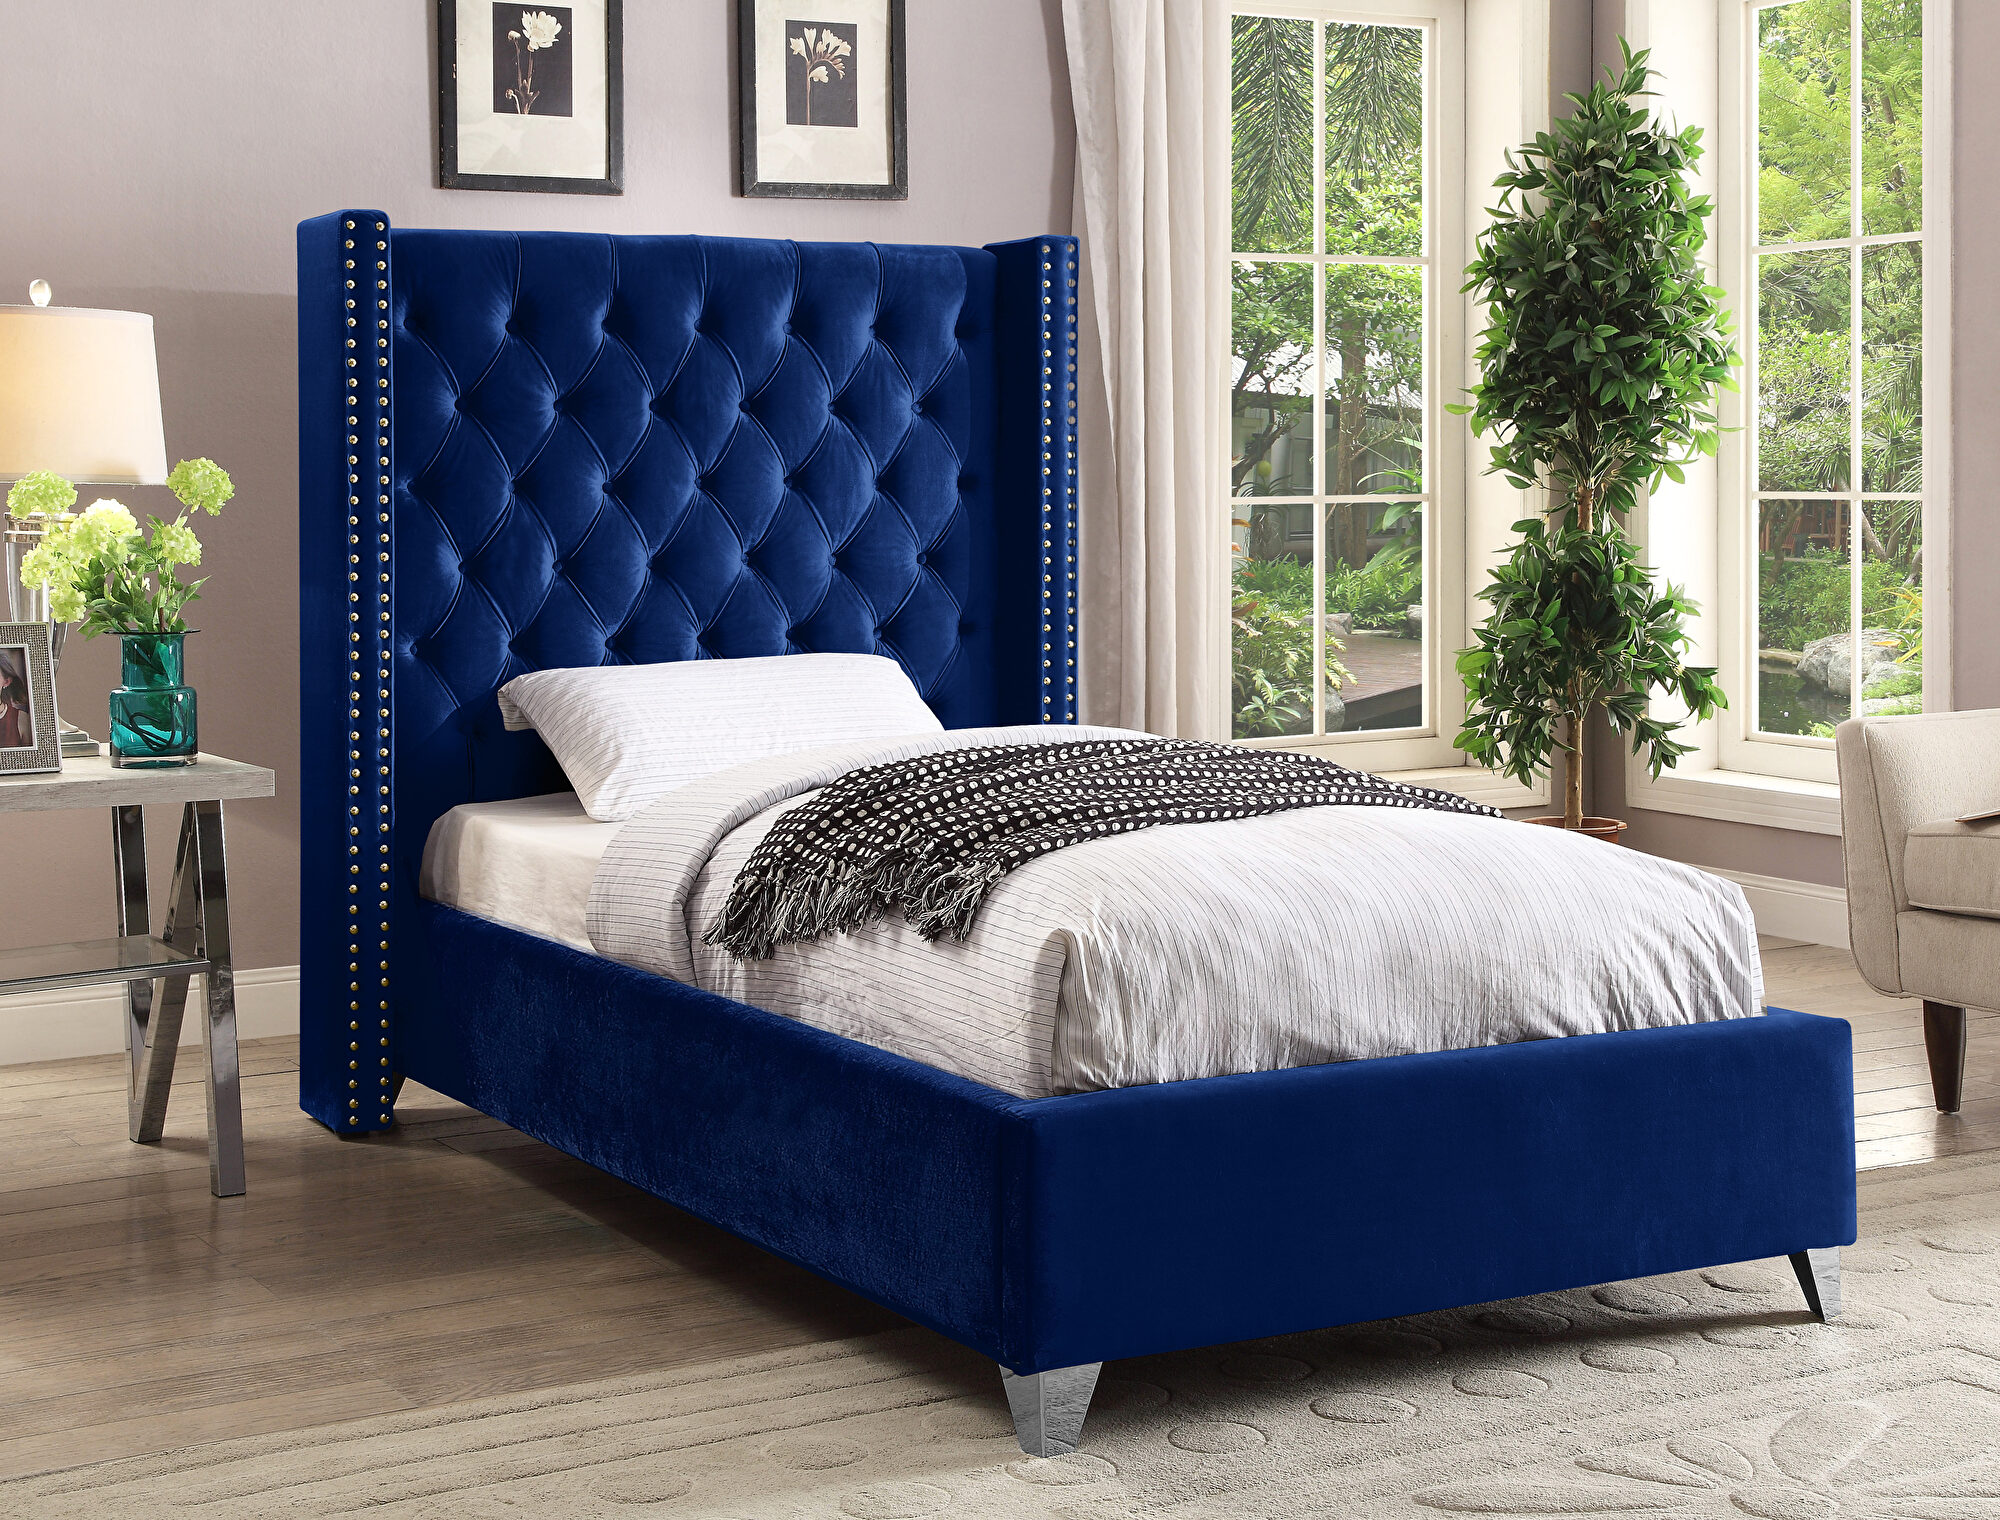 Aiden Navy Twin Size Bed aiden Meridian Furniture Twin ...